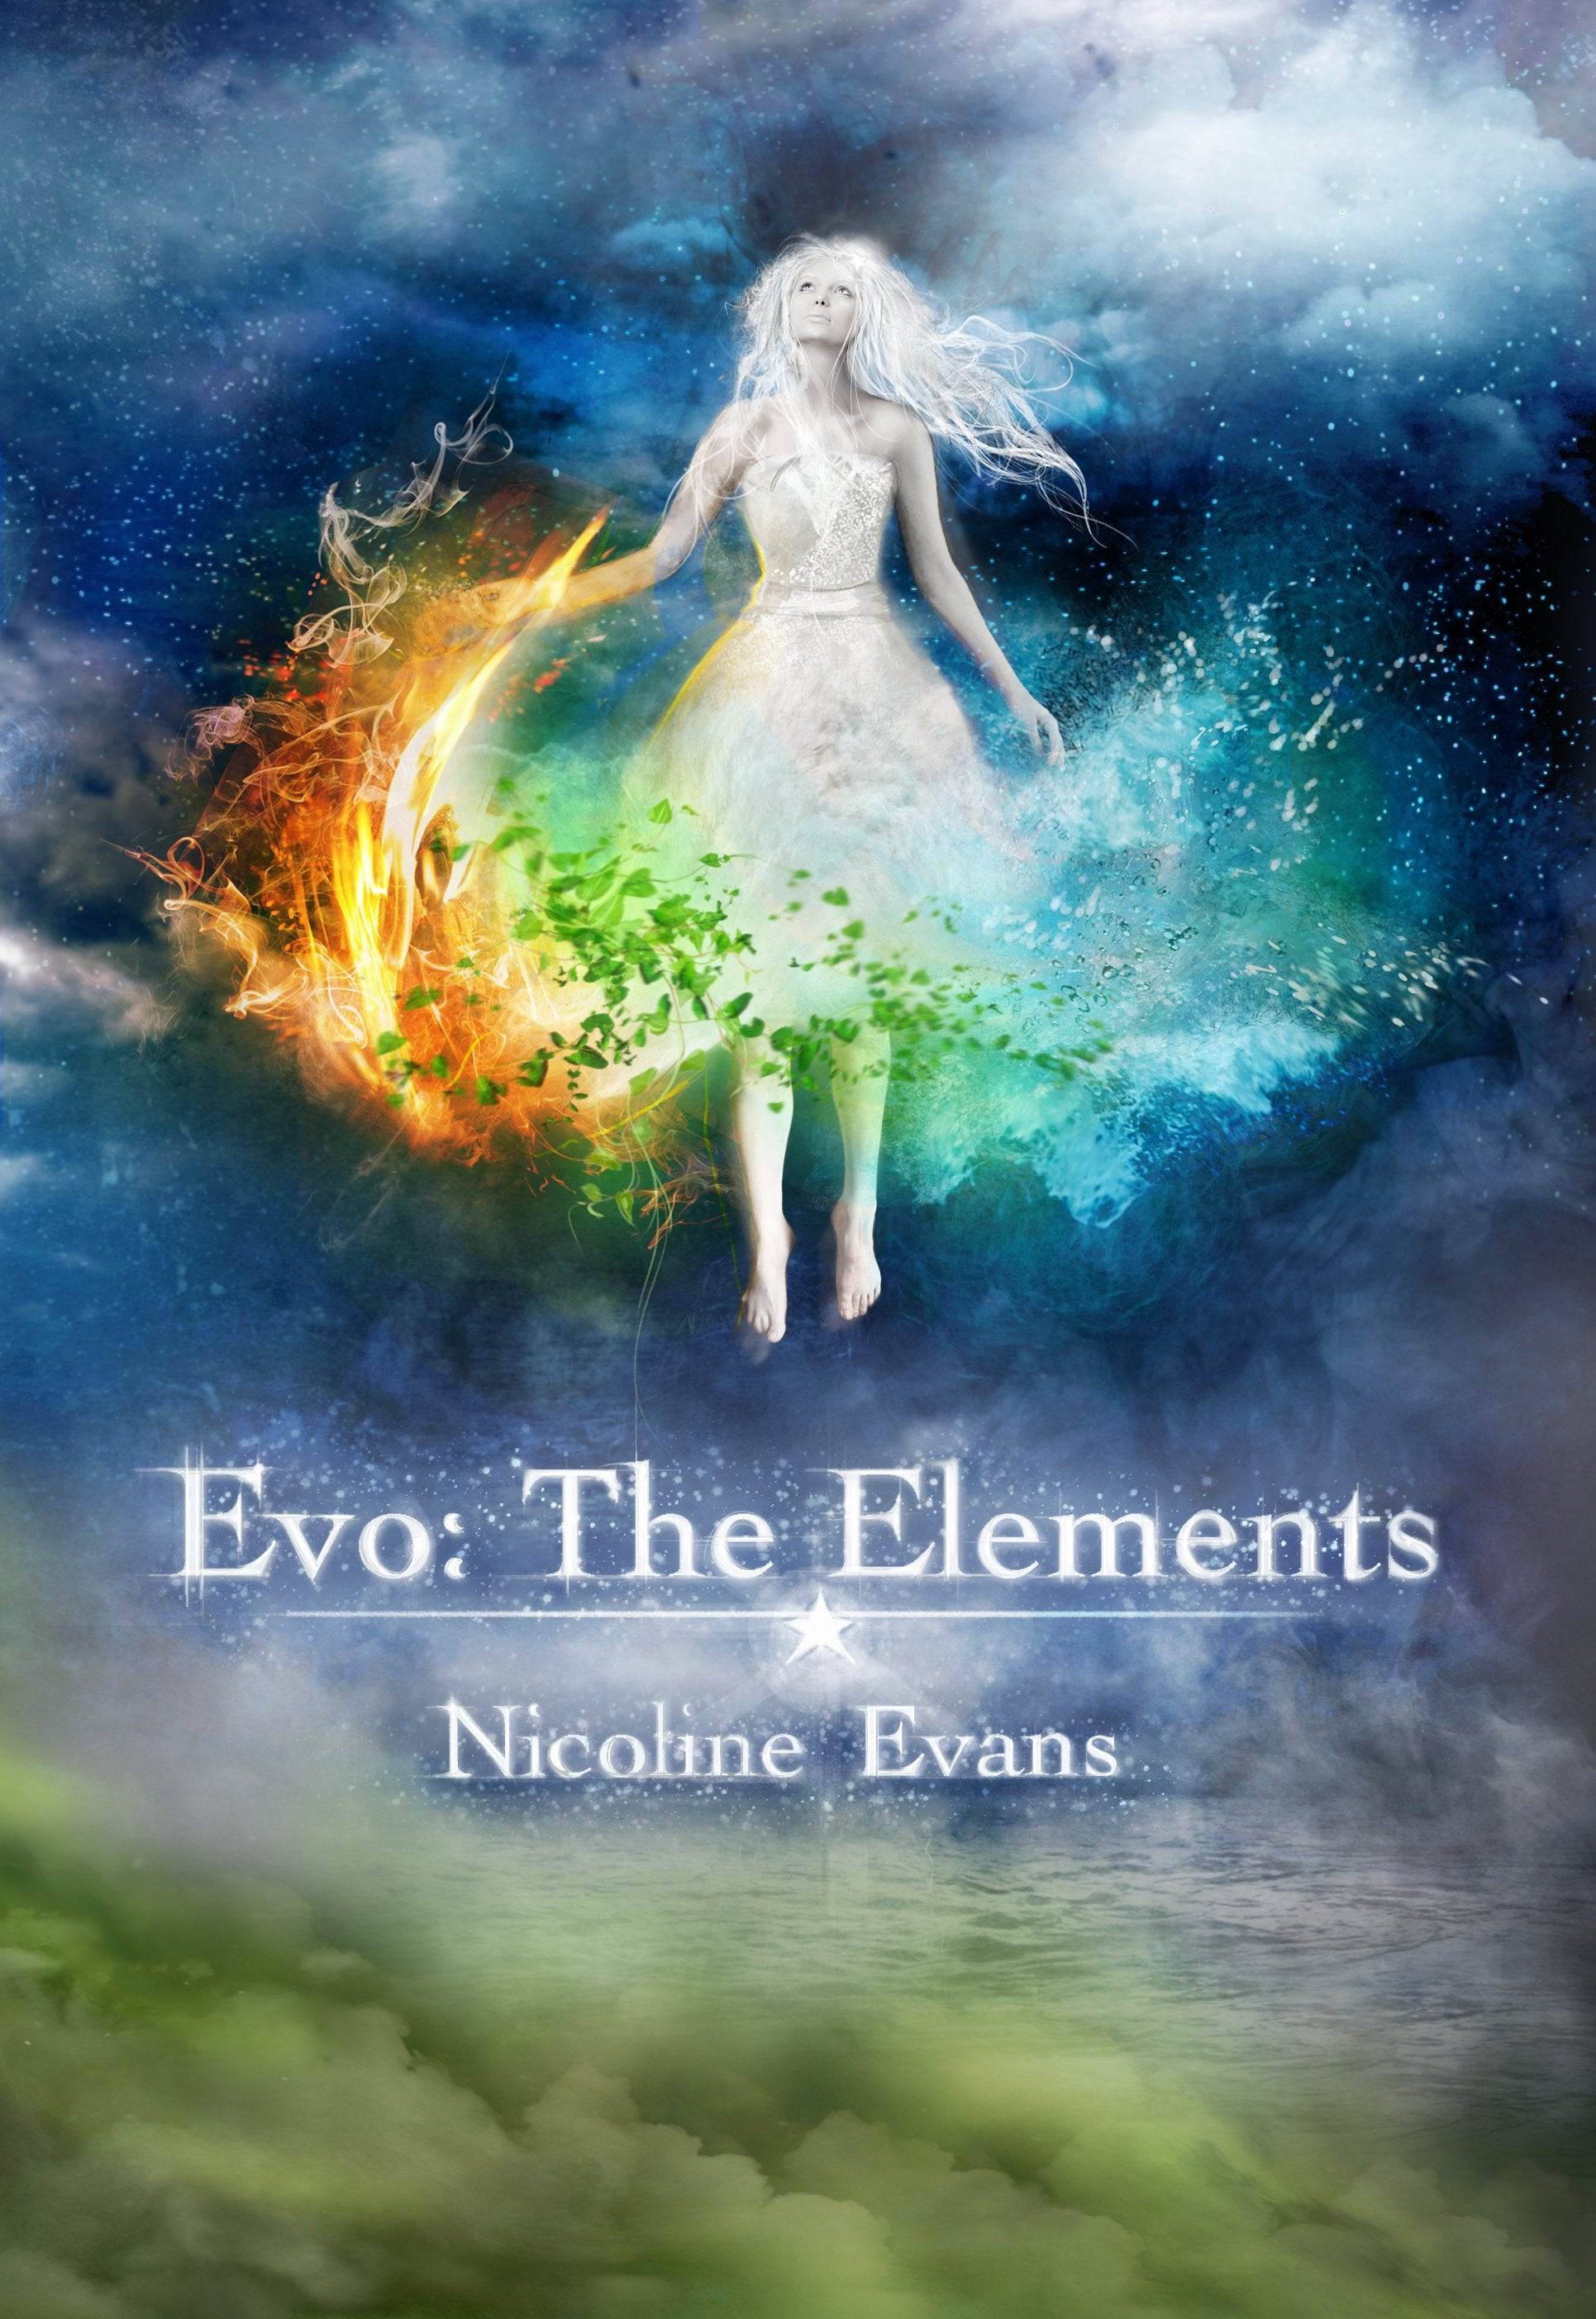 Evo: The Elements